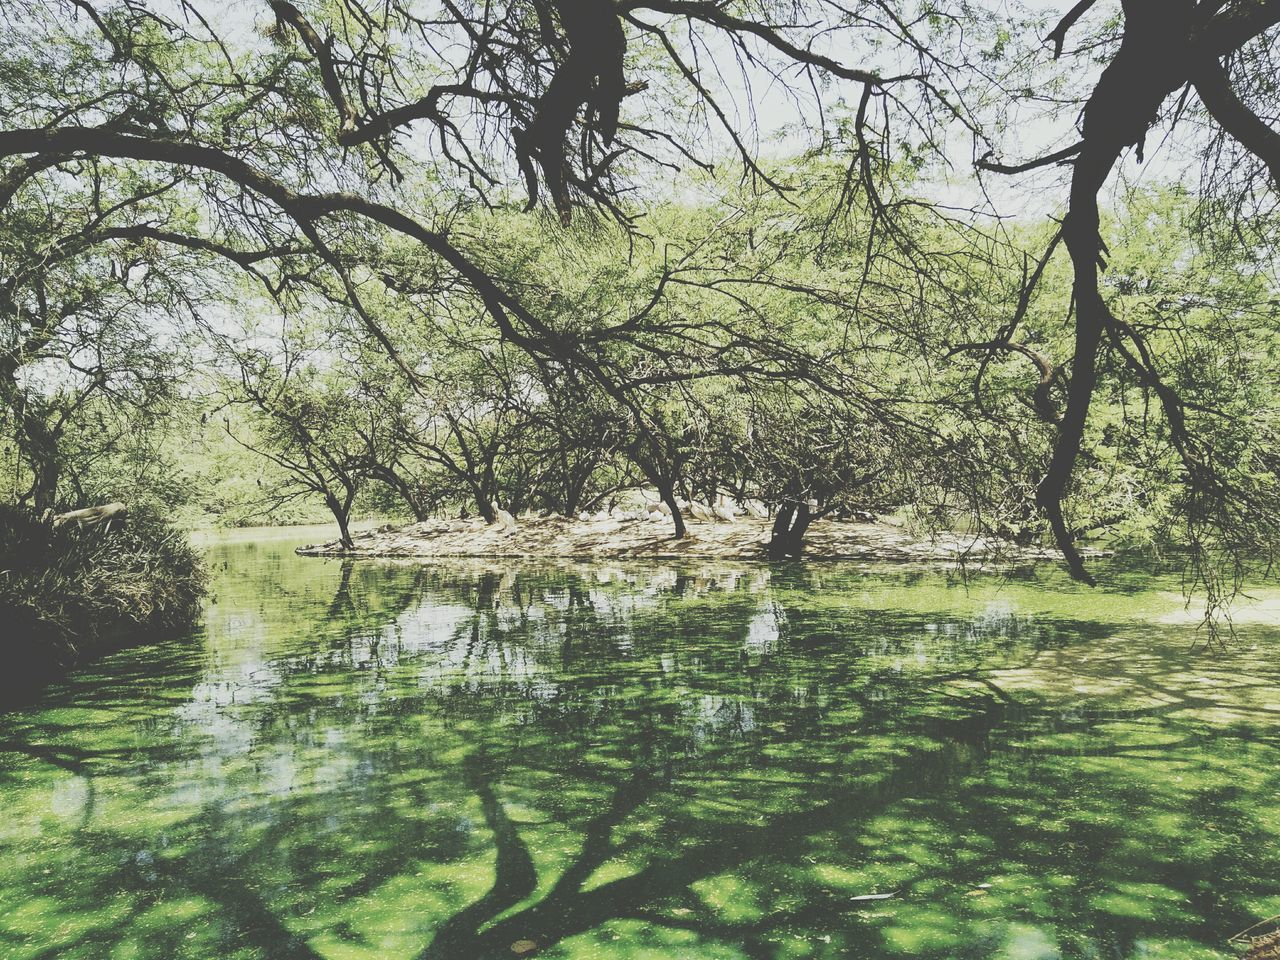 tree, water, reflection, lake, nature, tranquility, outdoors, beauty in nature, day, tranquil scene, waterfront, no people, branch, growth, scenics, forest, sky